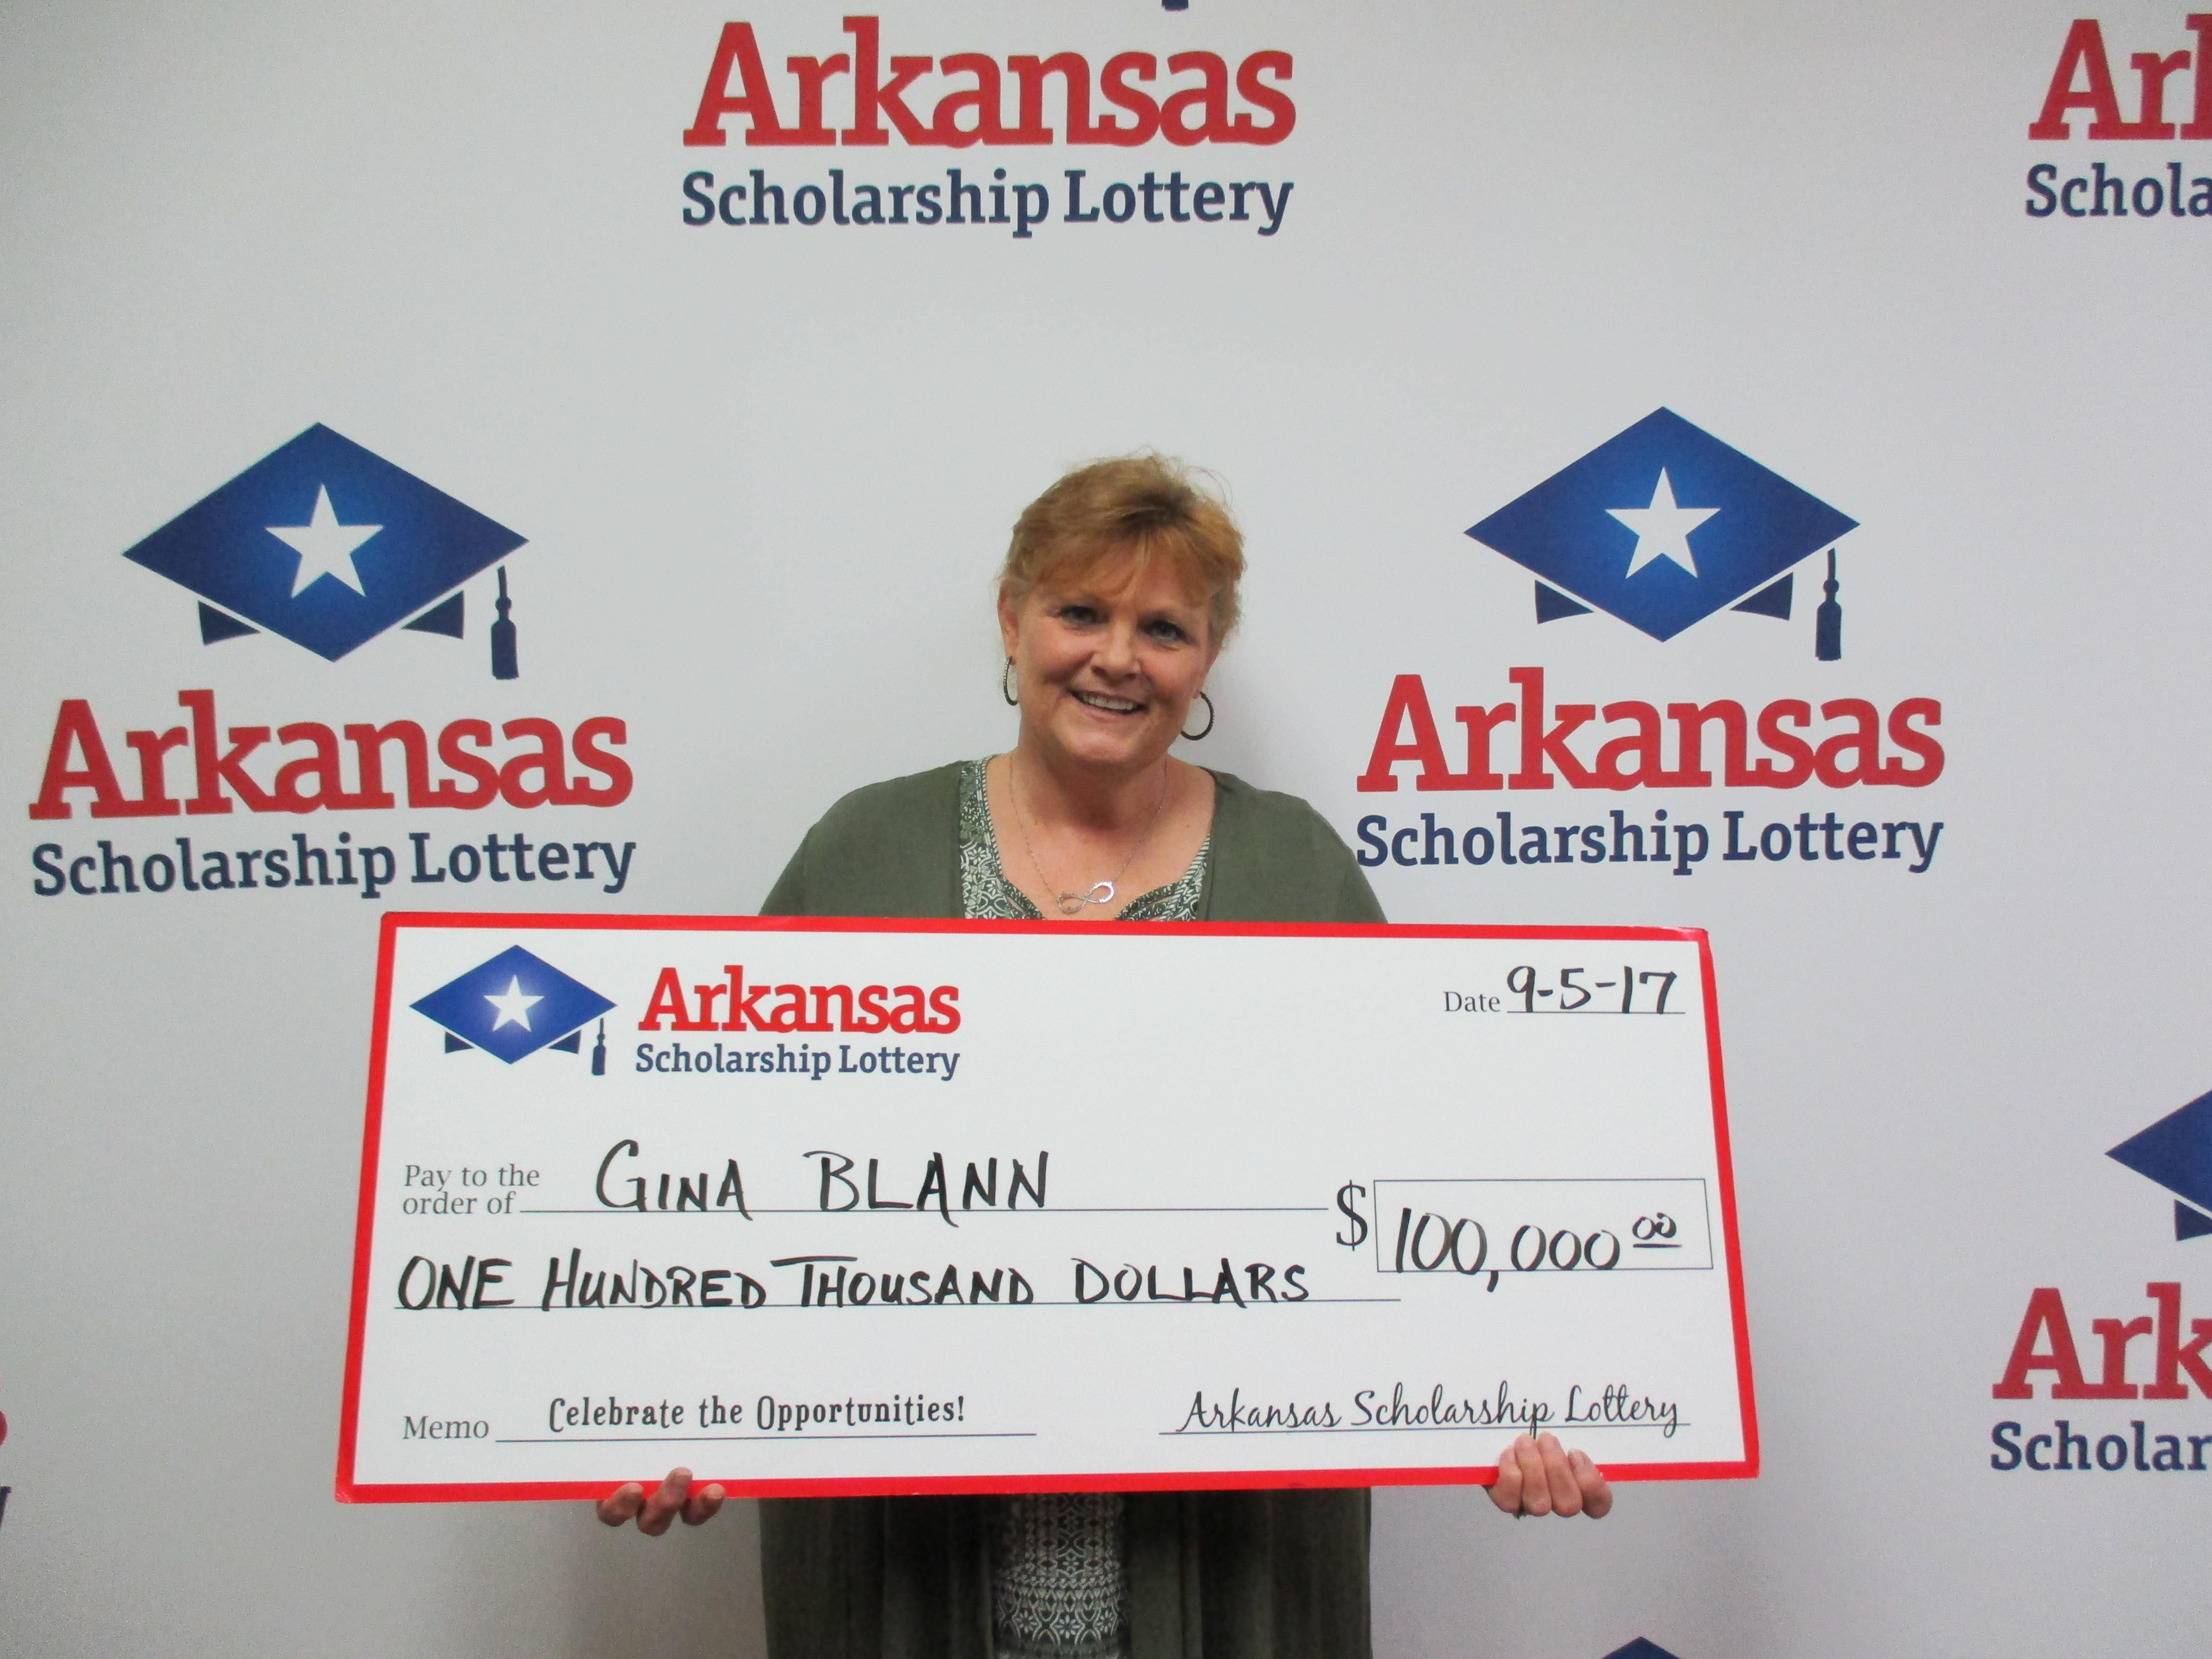 Gina Blann picked up her ticket at the Tobacco Warehouse in Camden and plans to pay off bills. (Photo courtesy: Arkansas Scholarship lottery)